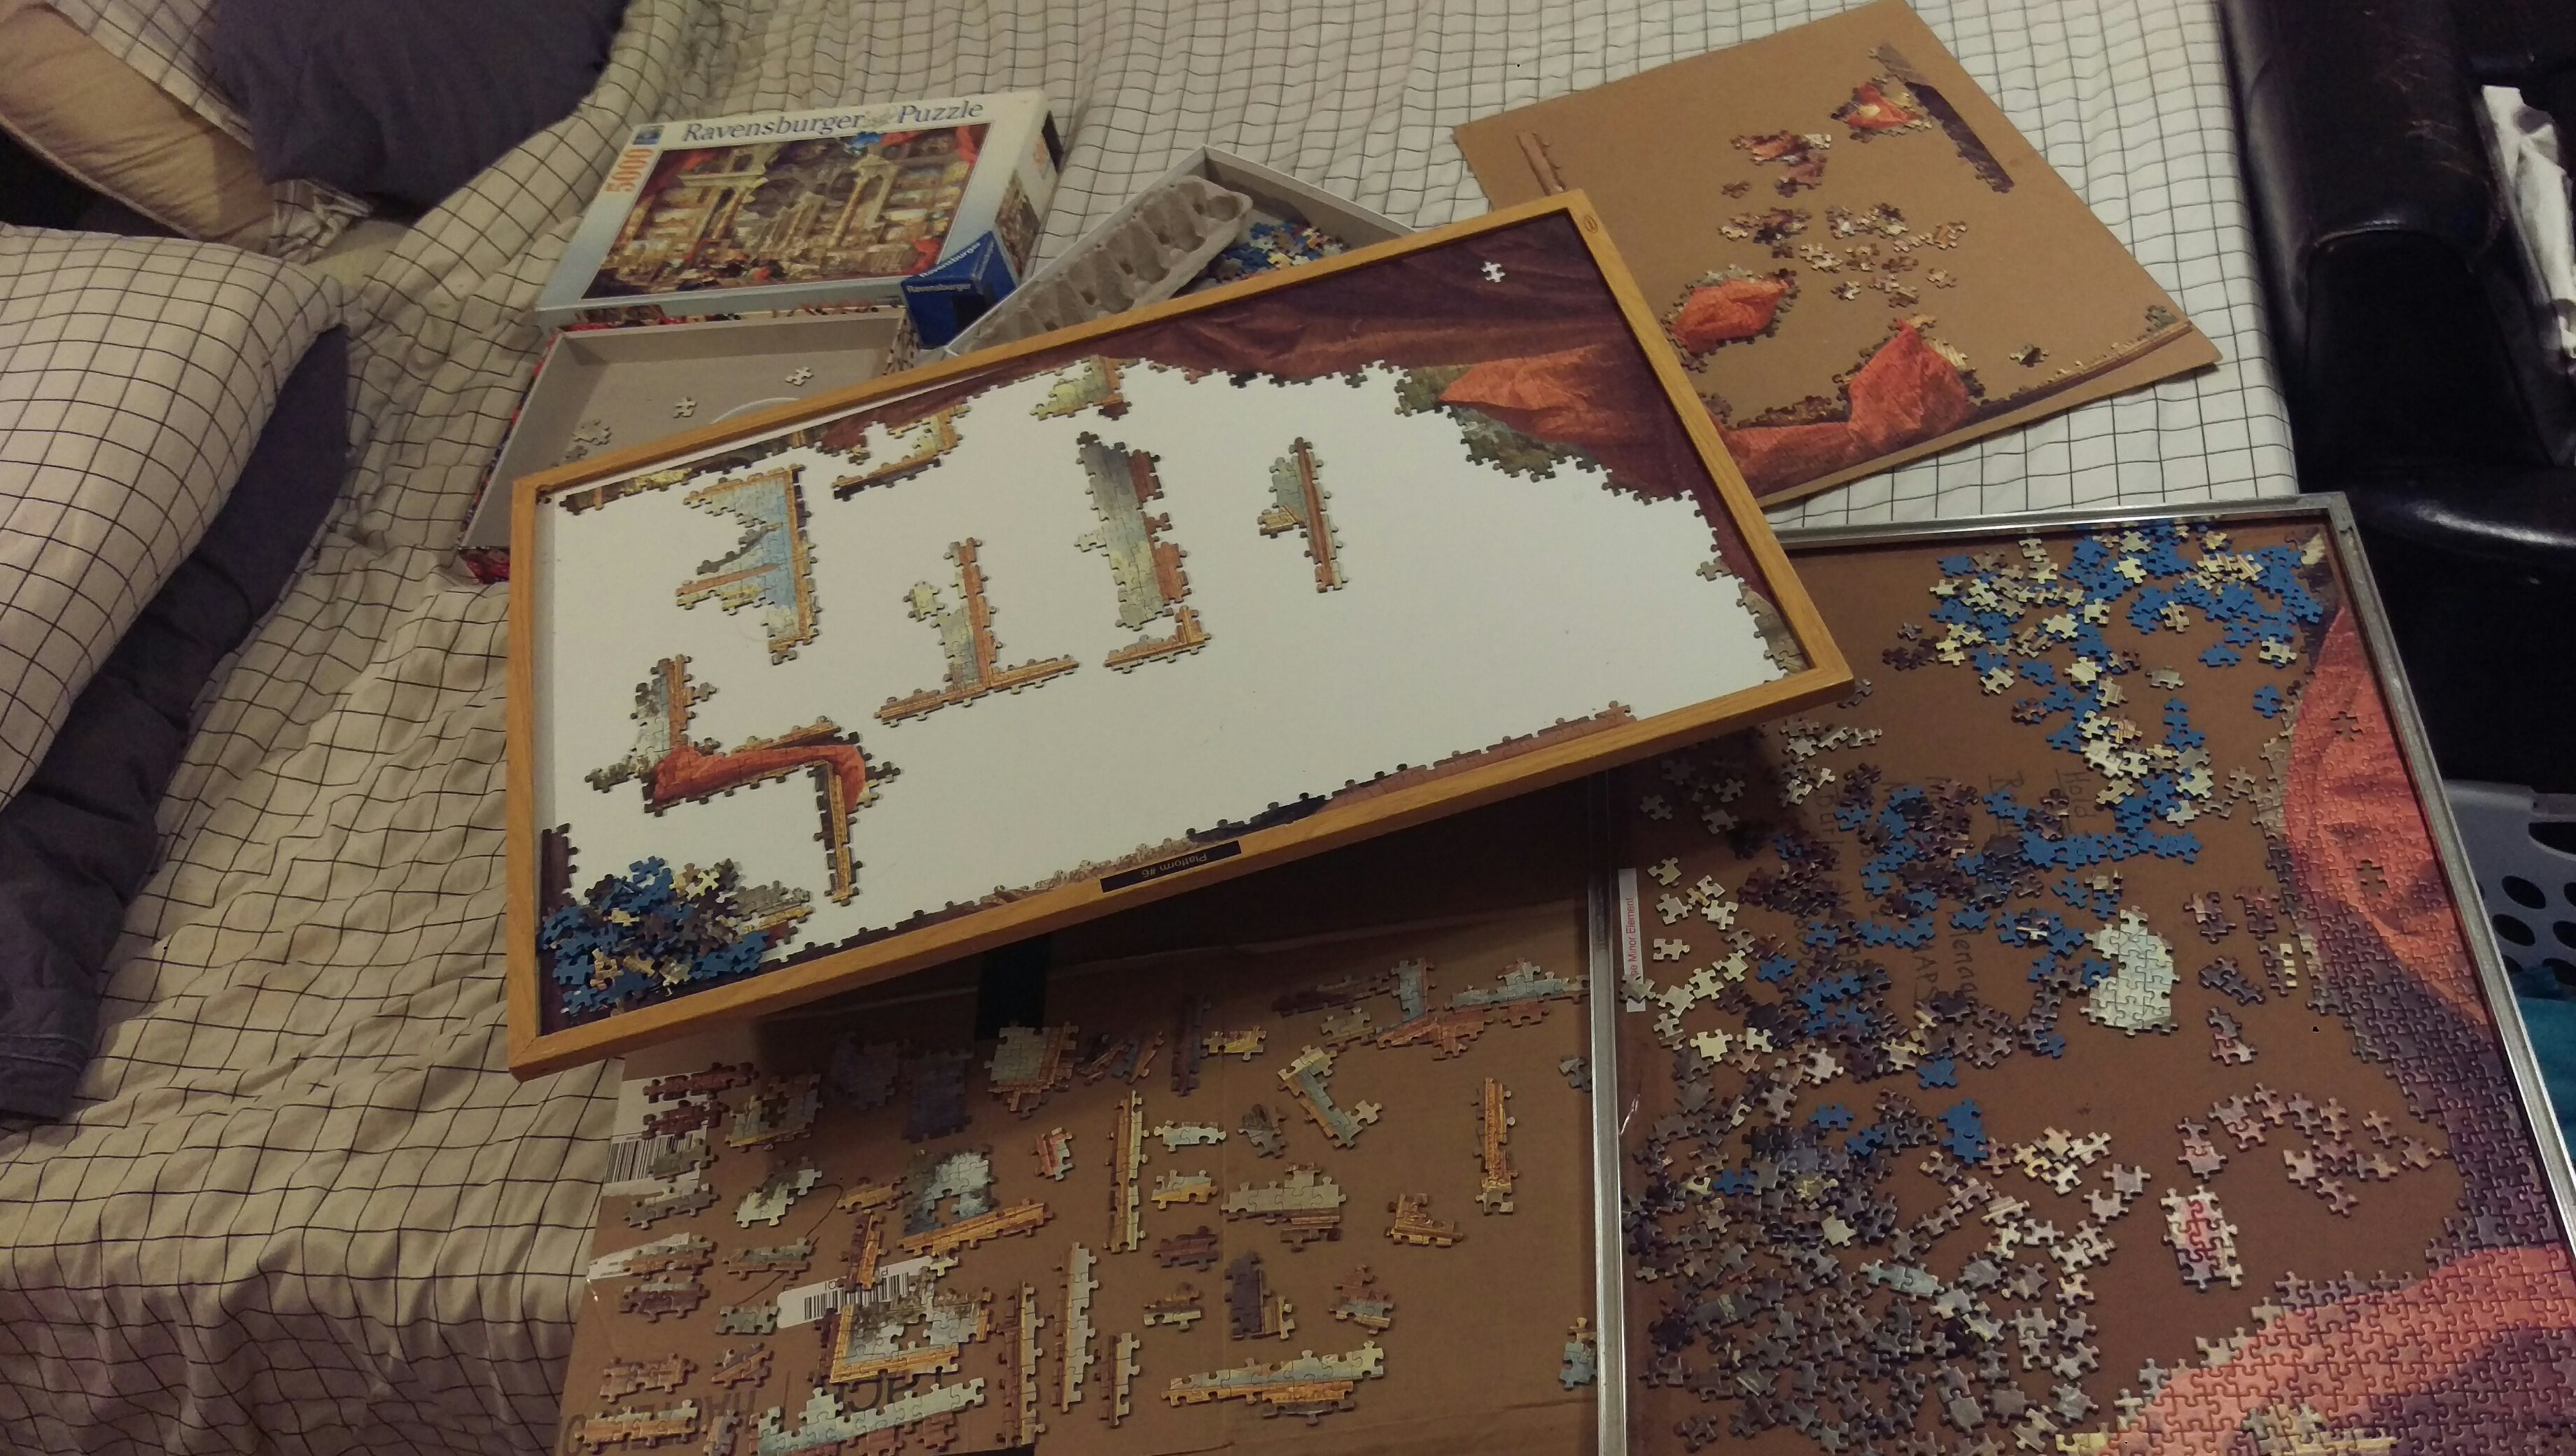 For Guys With Anxiety, Stress and PTSD, Jigsaw Puzzles Are